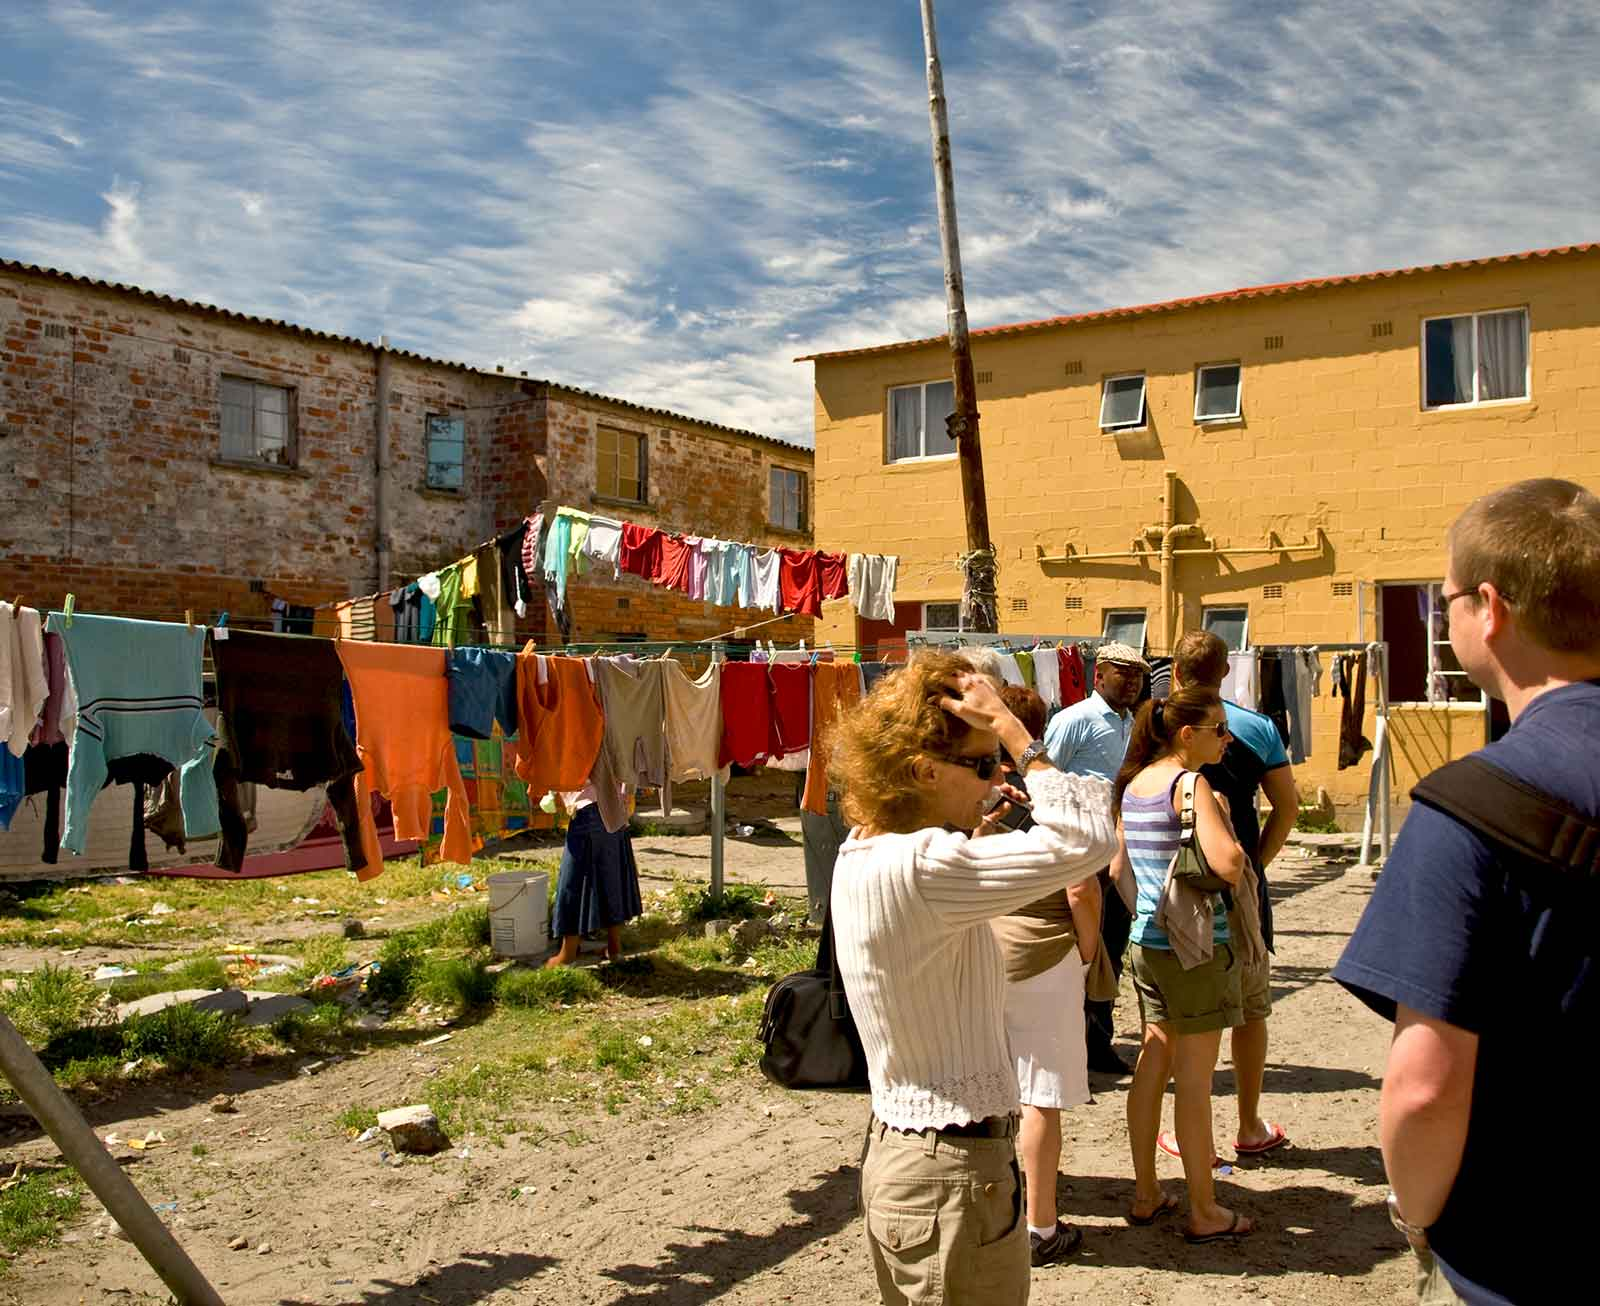 Township tour walking-tour through the hostels of Langa